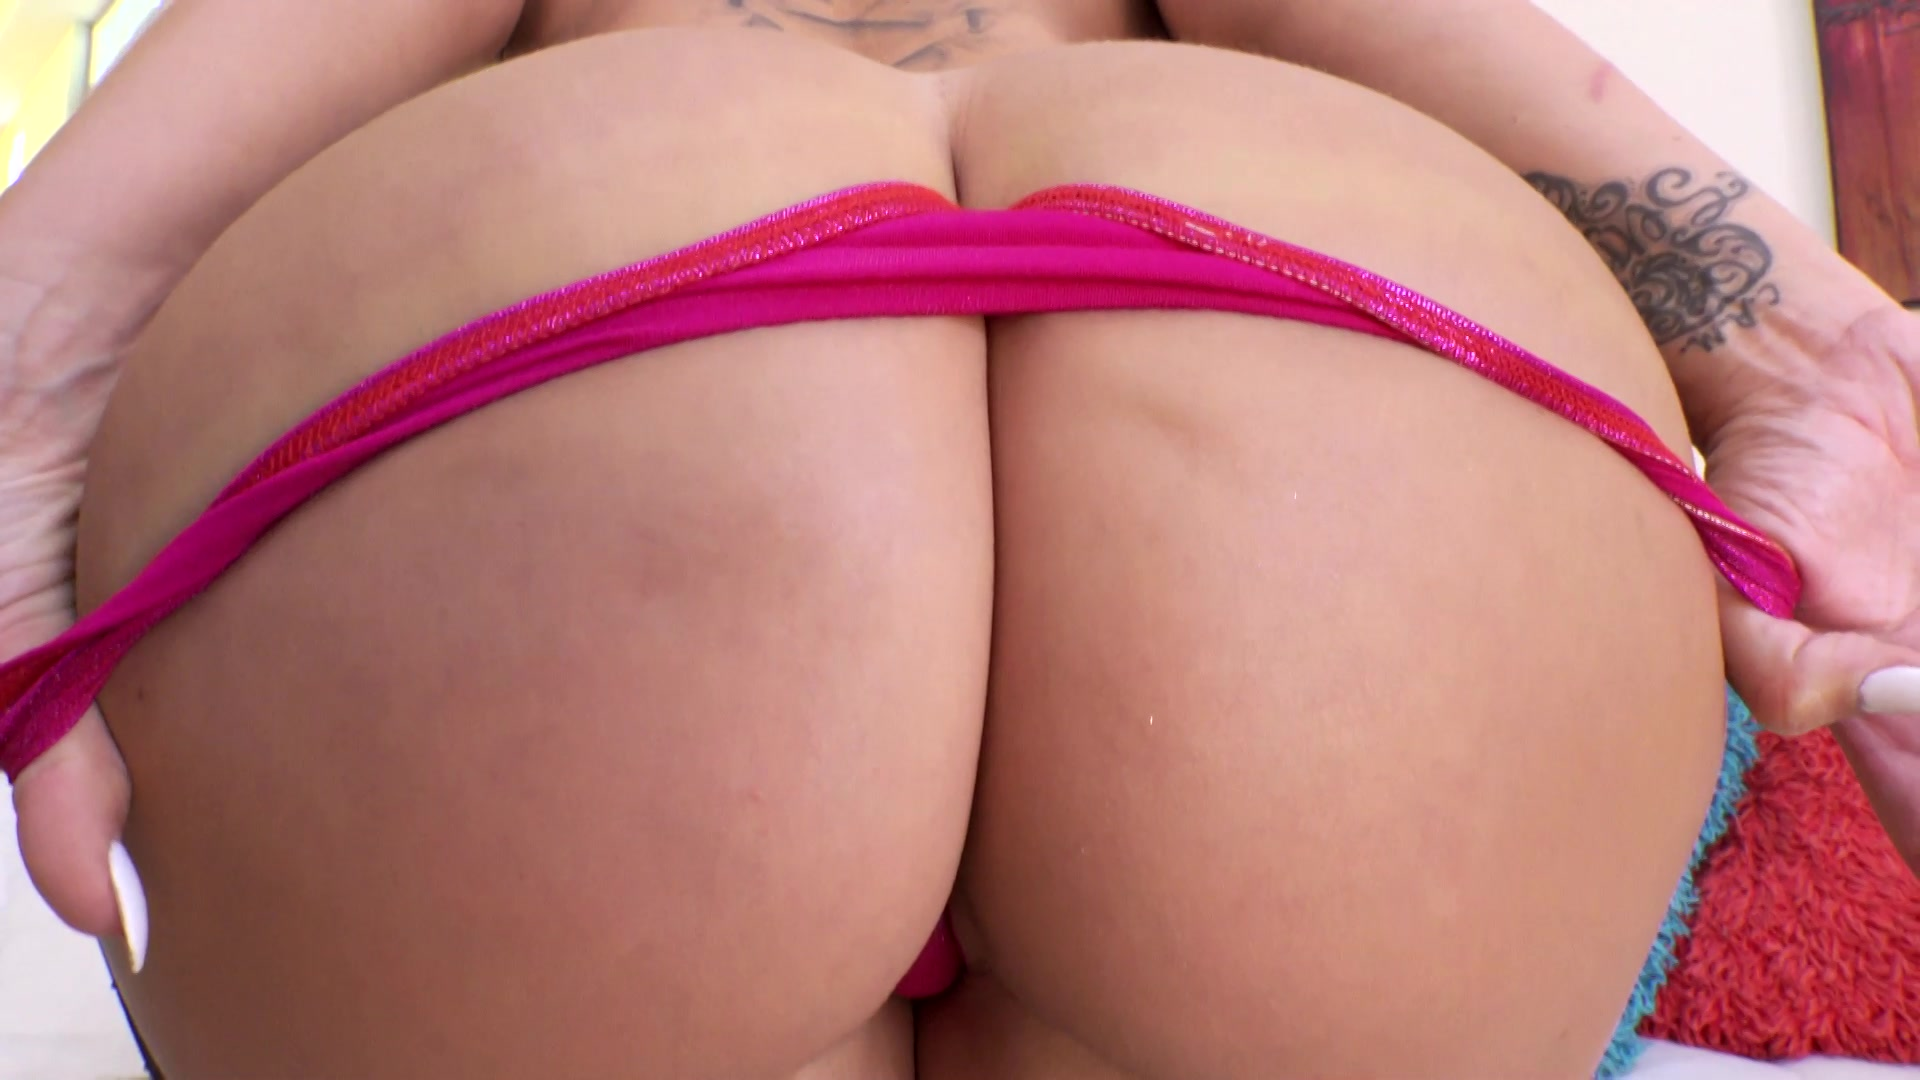 Trailers Big Booty Anal Babes Porn Video Adult Dvd Empire